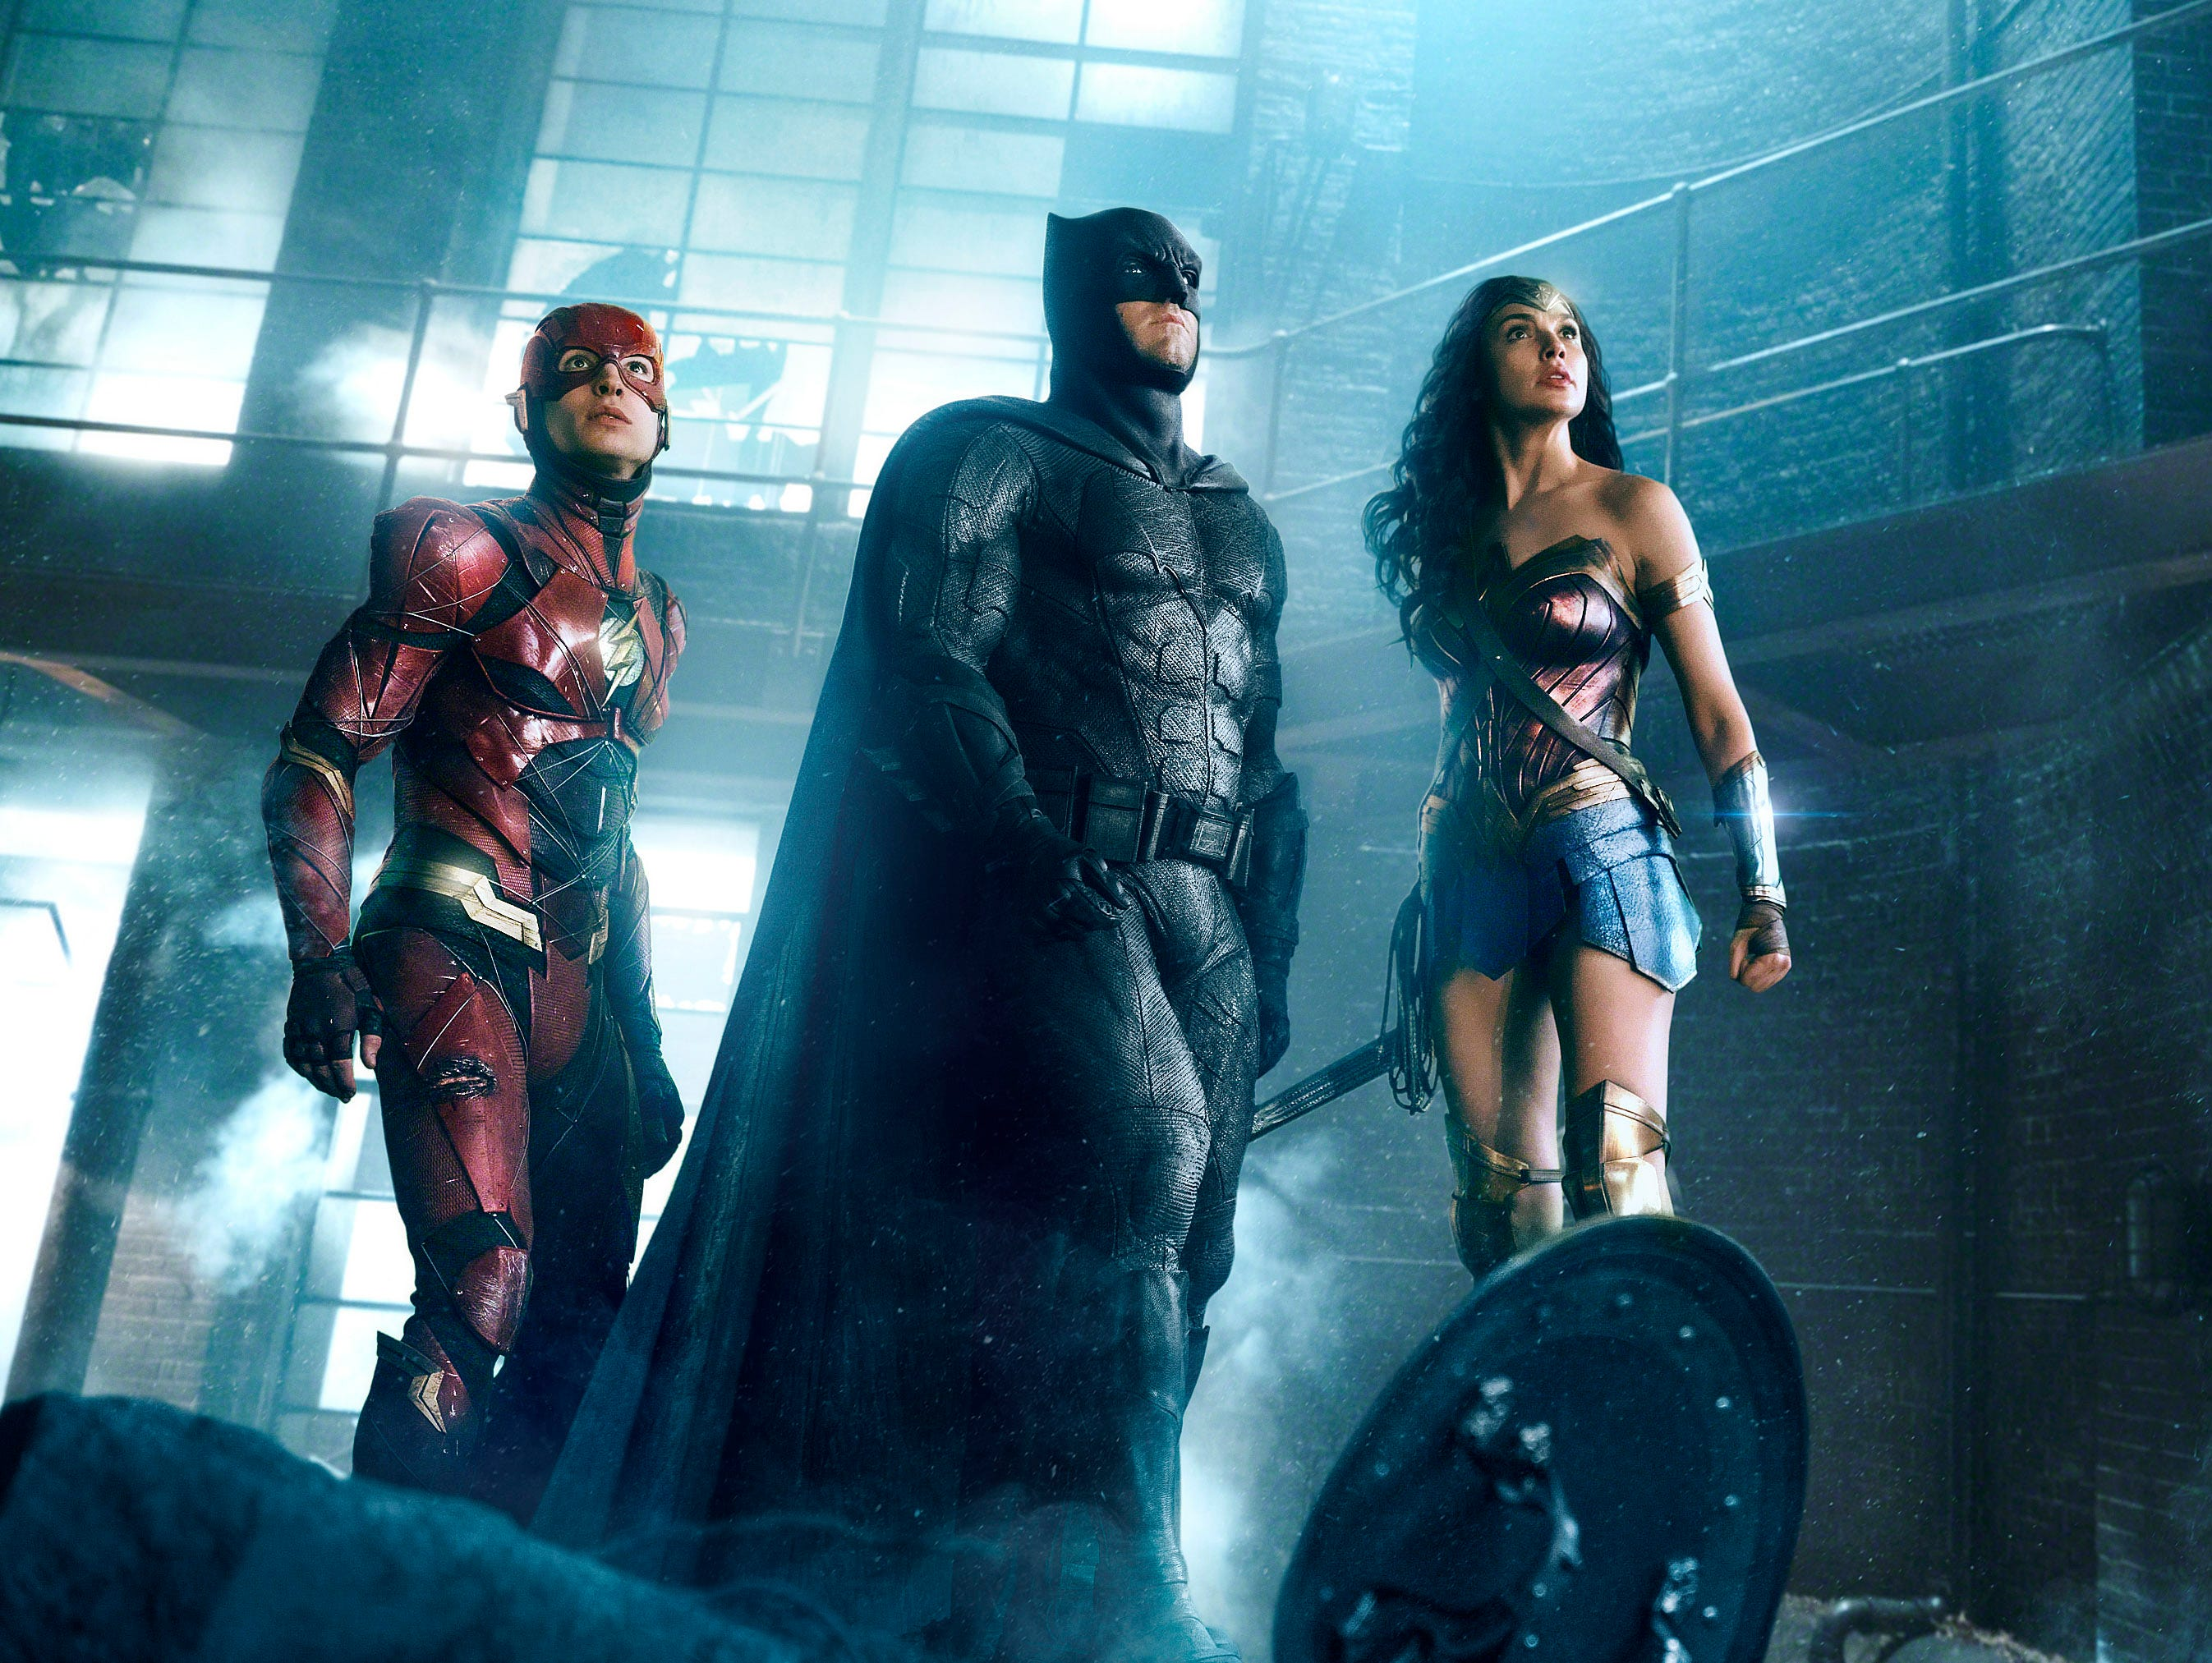 Join us on Wednesday 11/29 as we talk about 'Justice League'